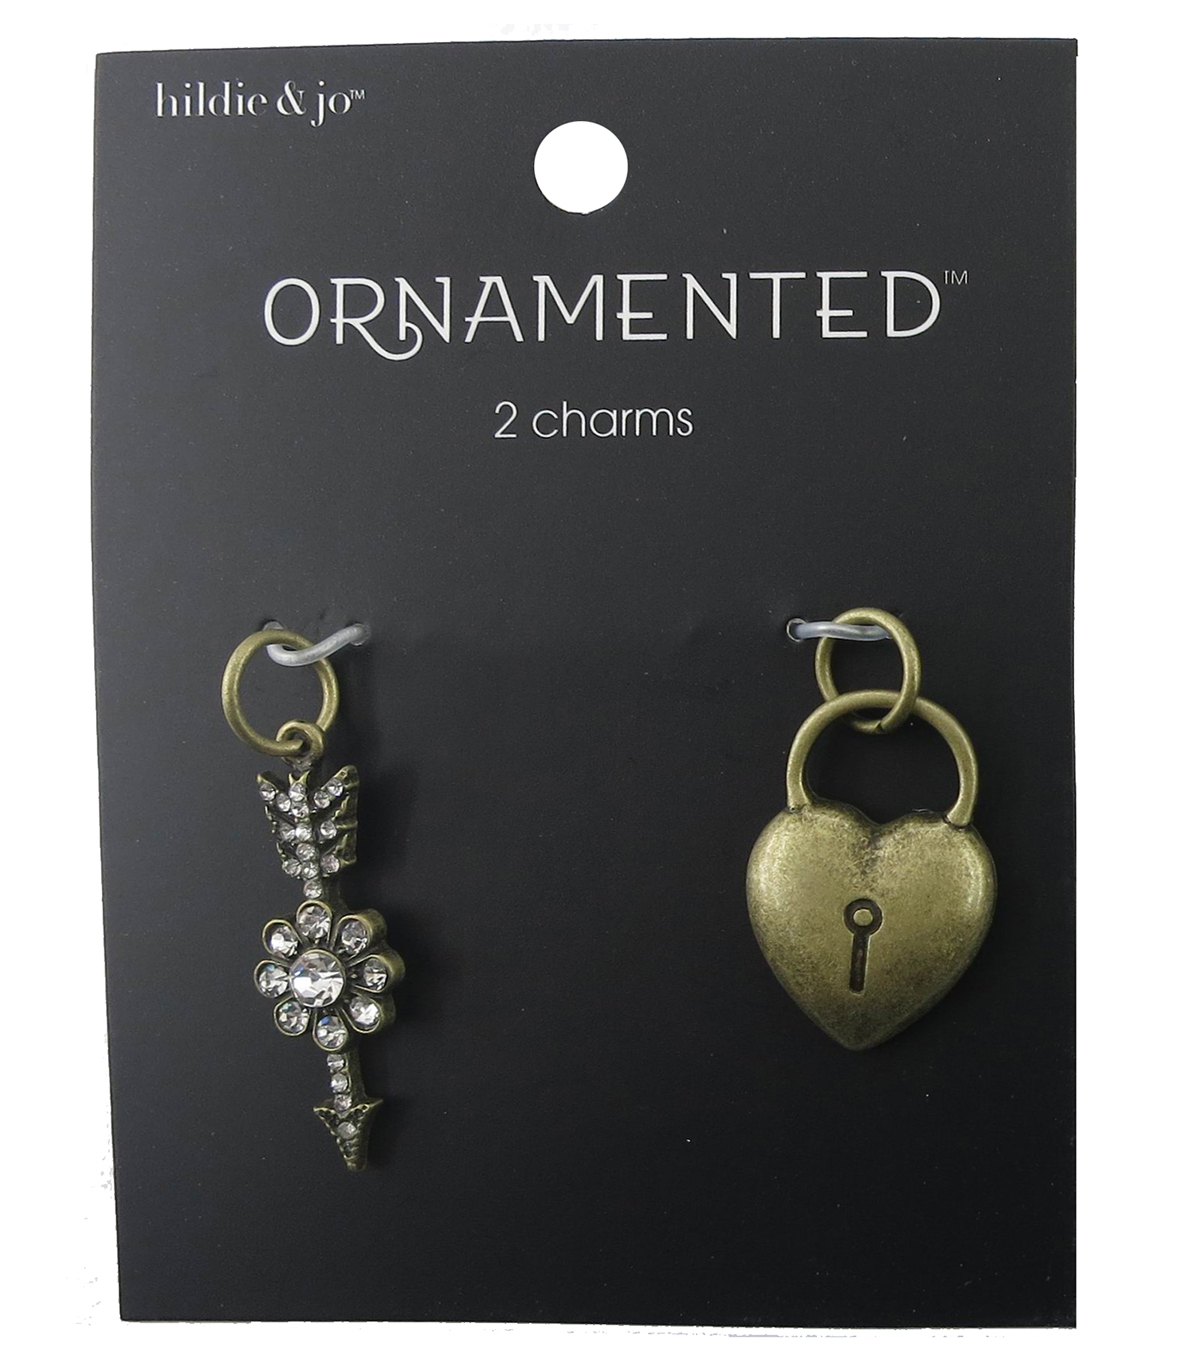 hildie & jo Ornamented Heart Lock & Jeweled Arrow Charms